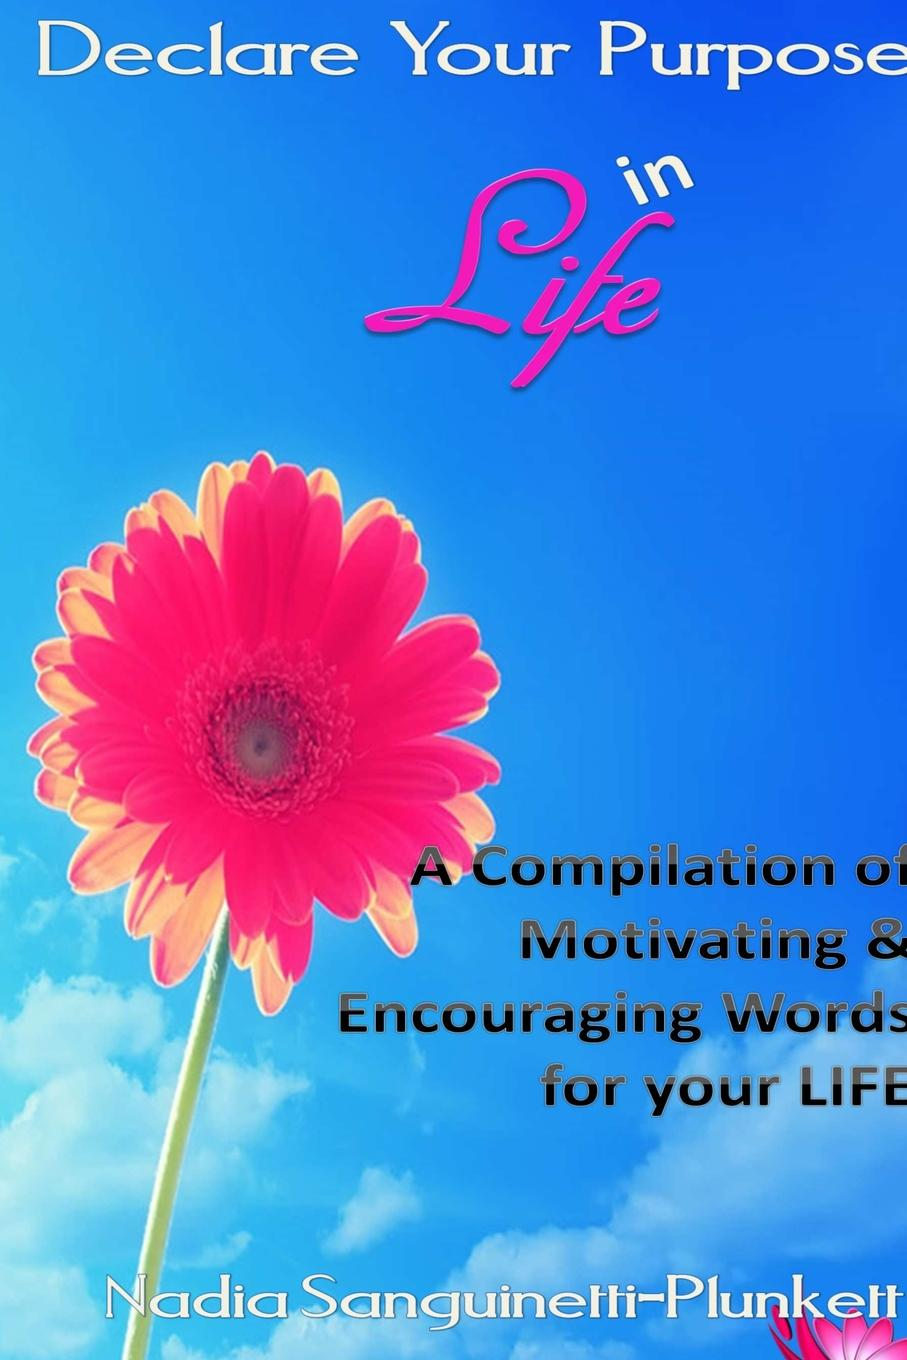 Nadia Plunkett Declare Your Purpose in Life. A Compilation of Motivating . Encouraging Words for Your Life